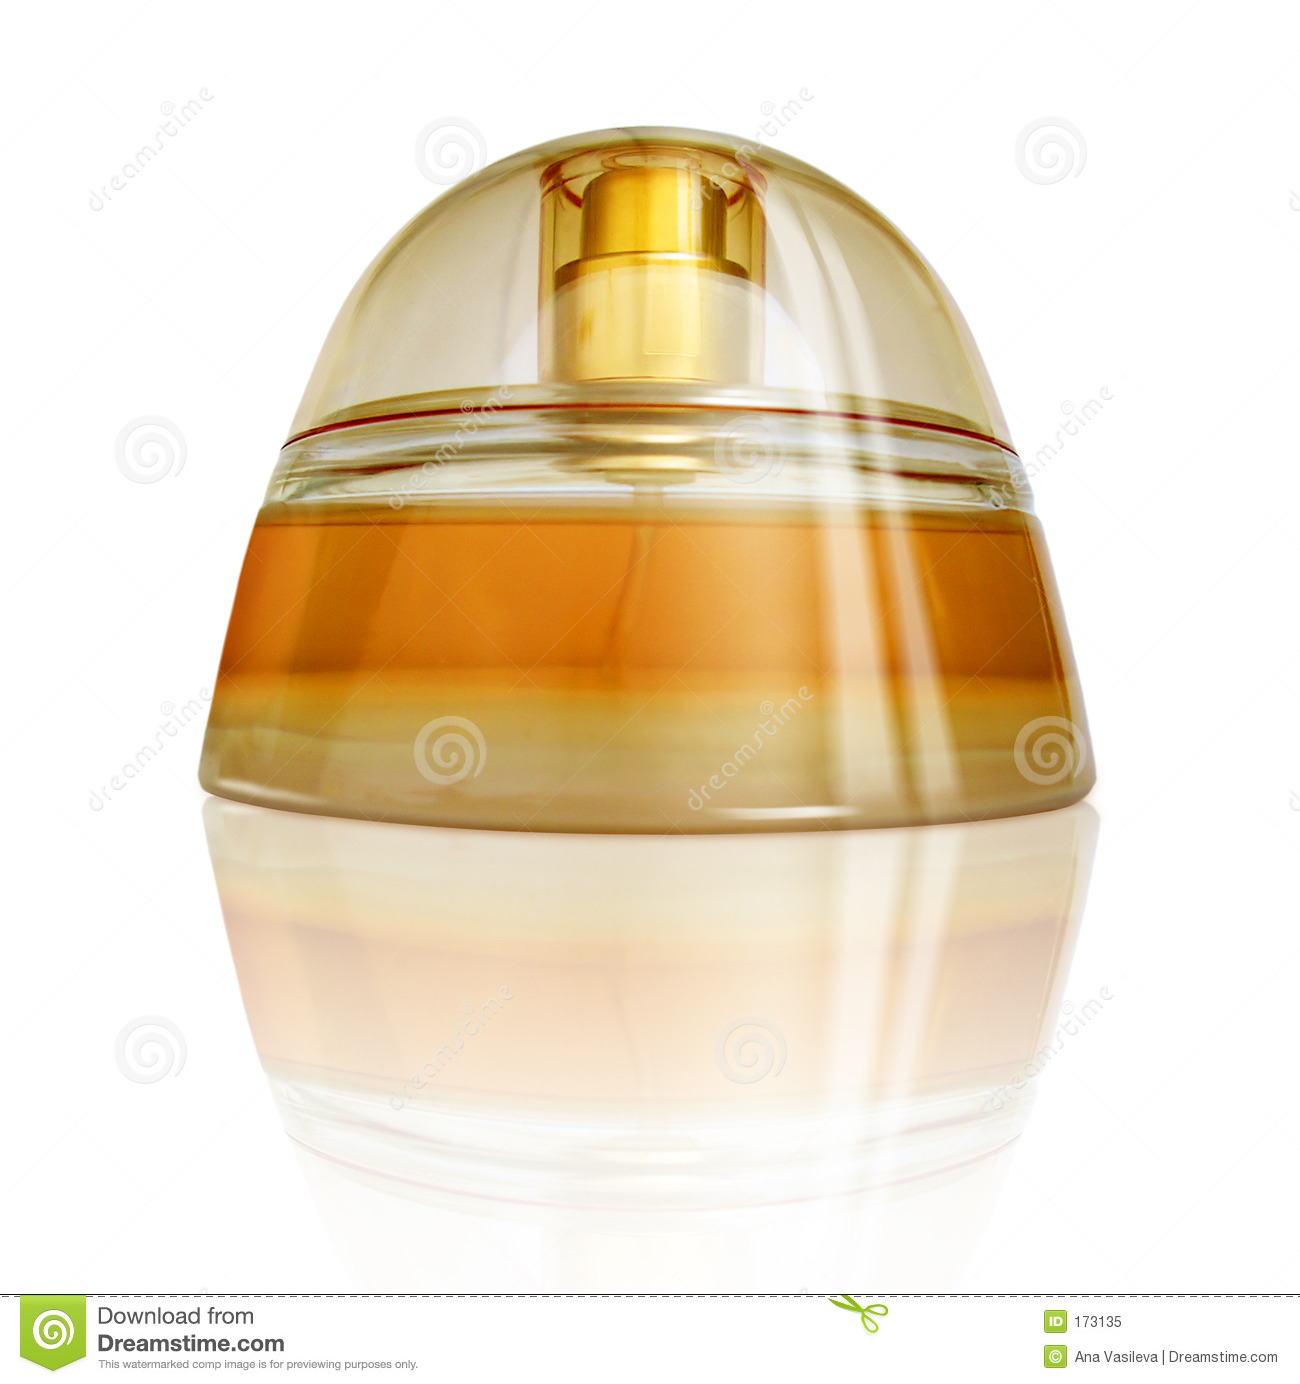 Luxurious Perfume With Reflection, Yellow-Orange Colors